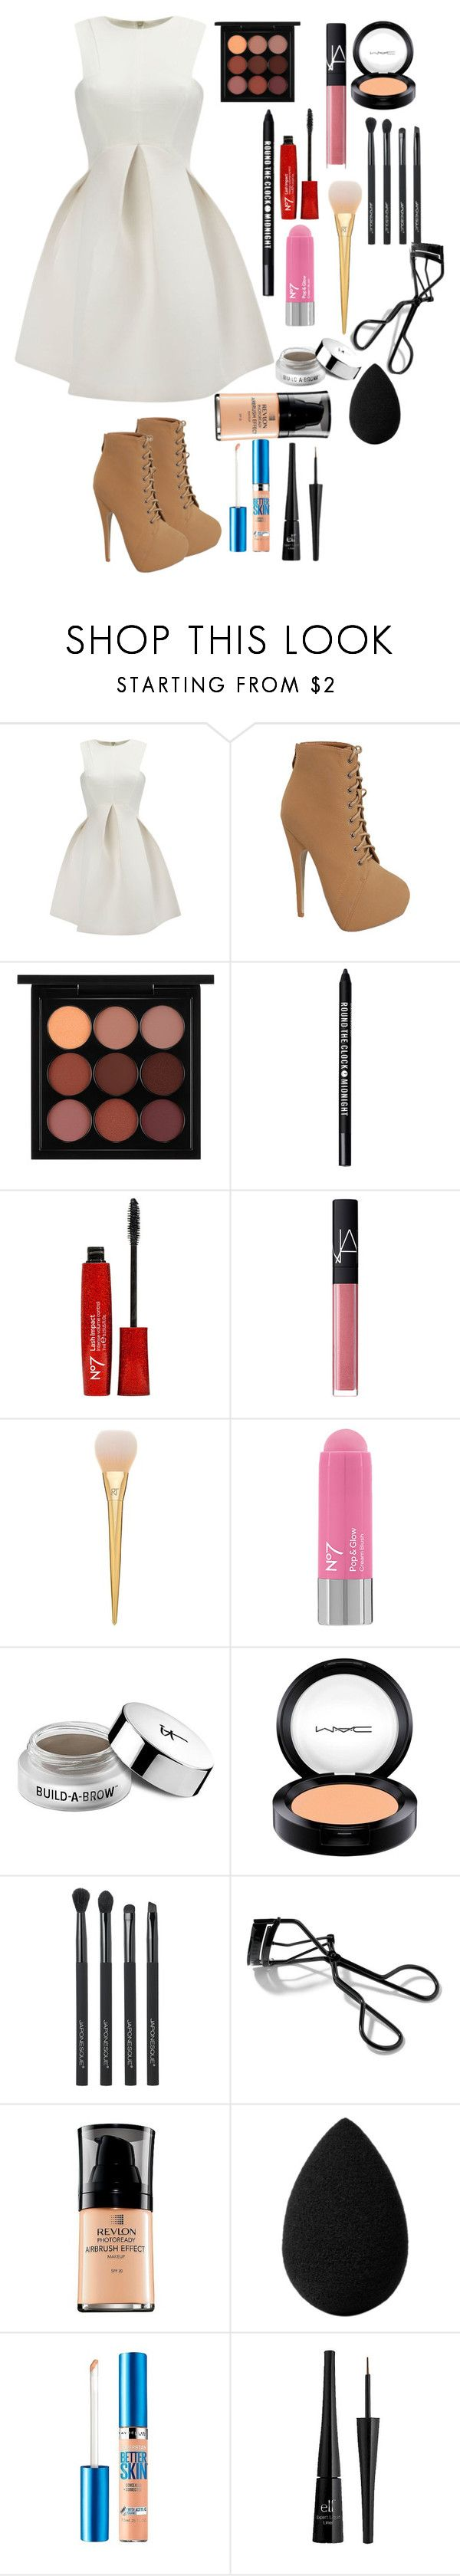 """""""Special Dinner outfit"""" by miley-wus-good ❤ liked on Polyvore featuring beauty, MAC Cosmetics, Bare Escentuals, NARS Cosmetics, It Cosmetics, Japonesque, Bobbi Brown Cosmetics, Revlon, beautyblender and Maybelline"""